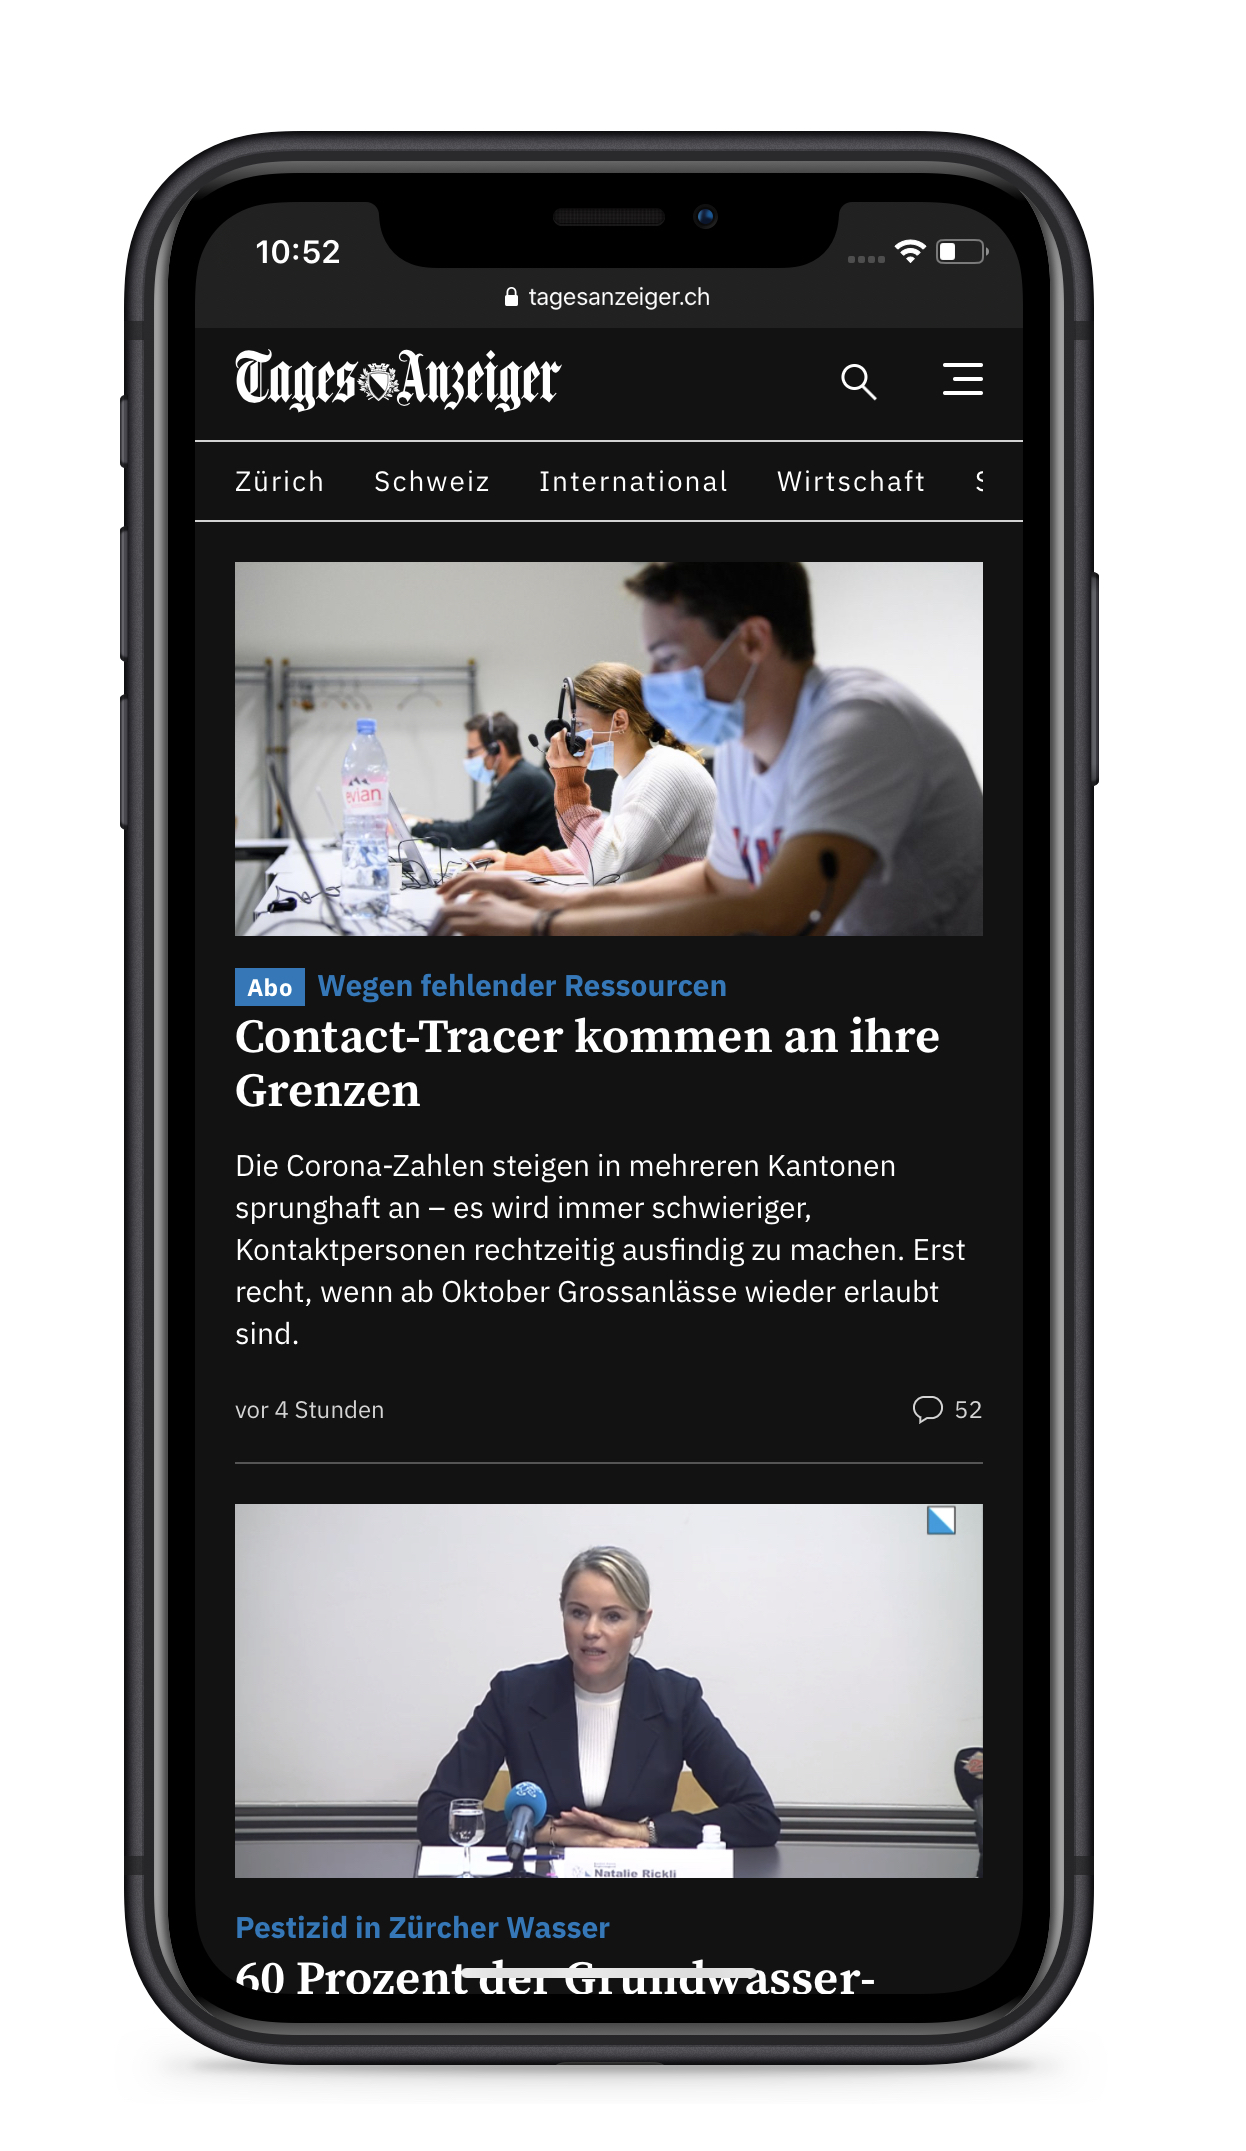 Tages-Anzeiger - iPhone - Front